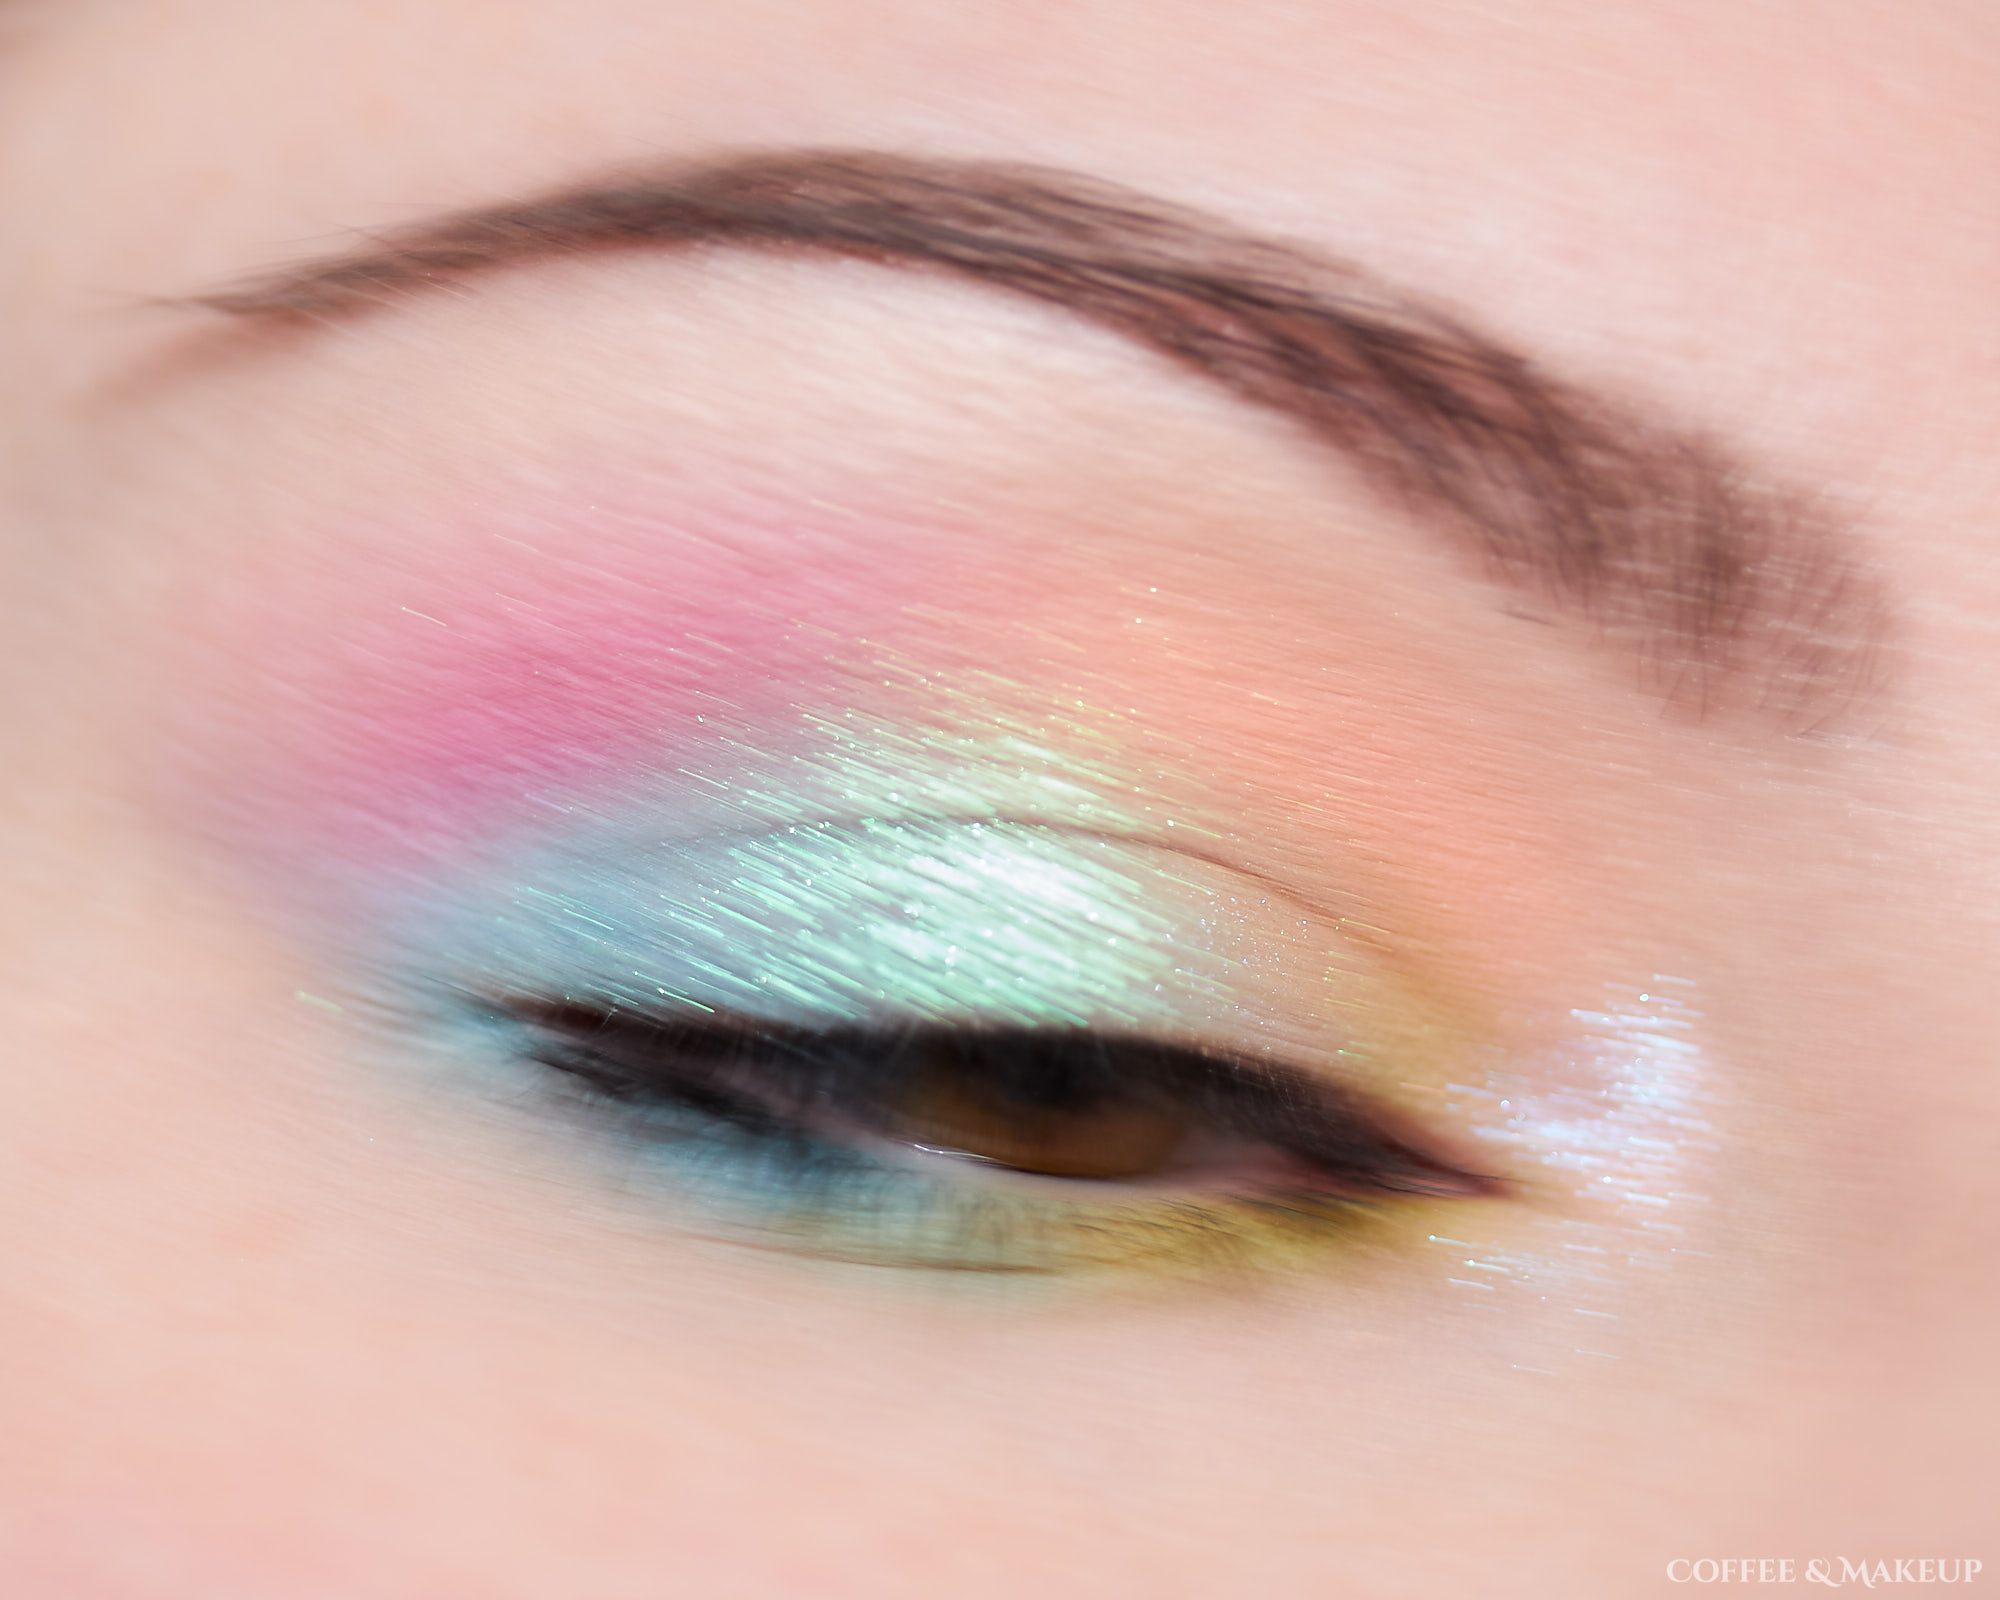 Makeup Geek Soft Focus Colors and Devinah Xploders Look #1 (edited)